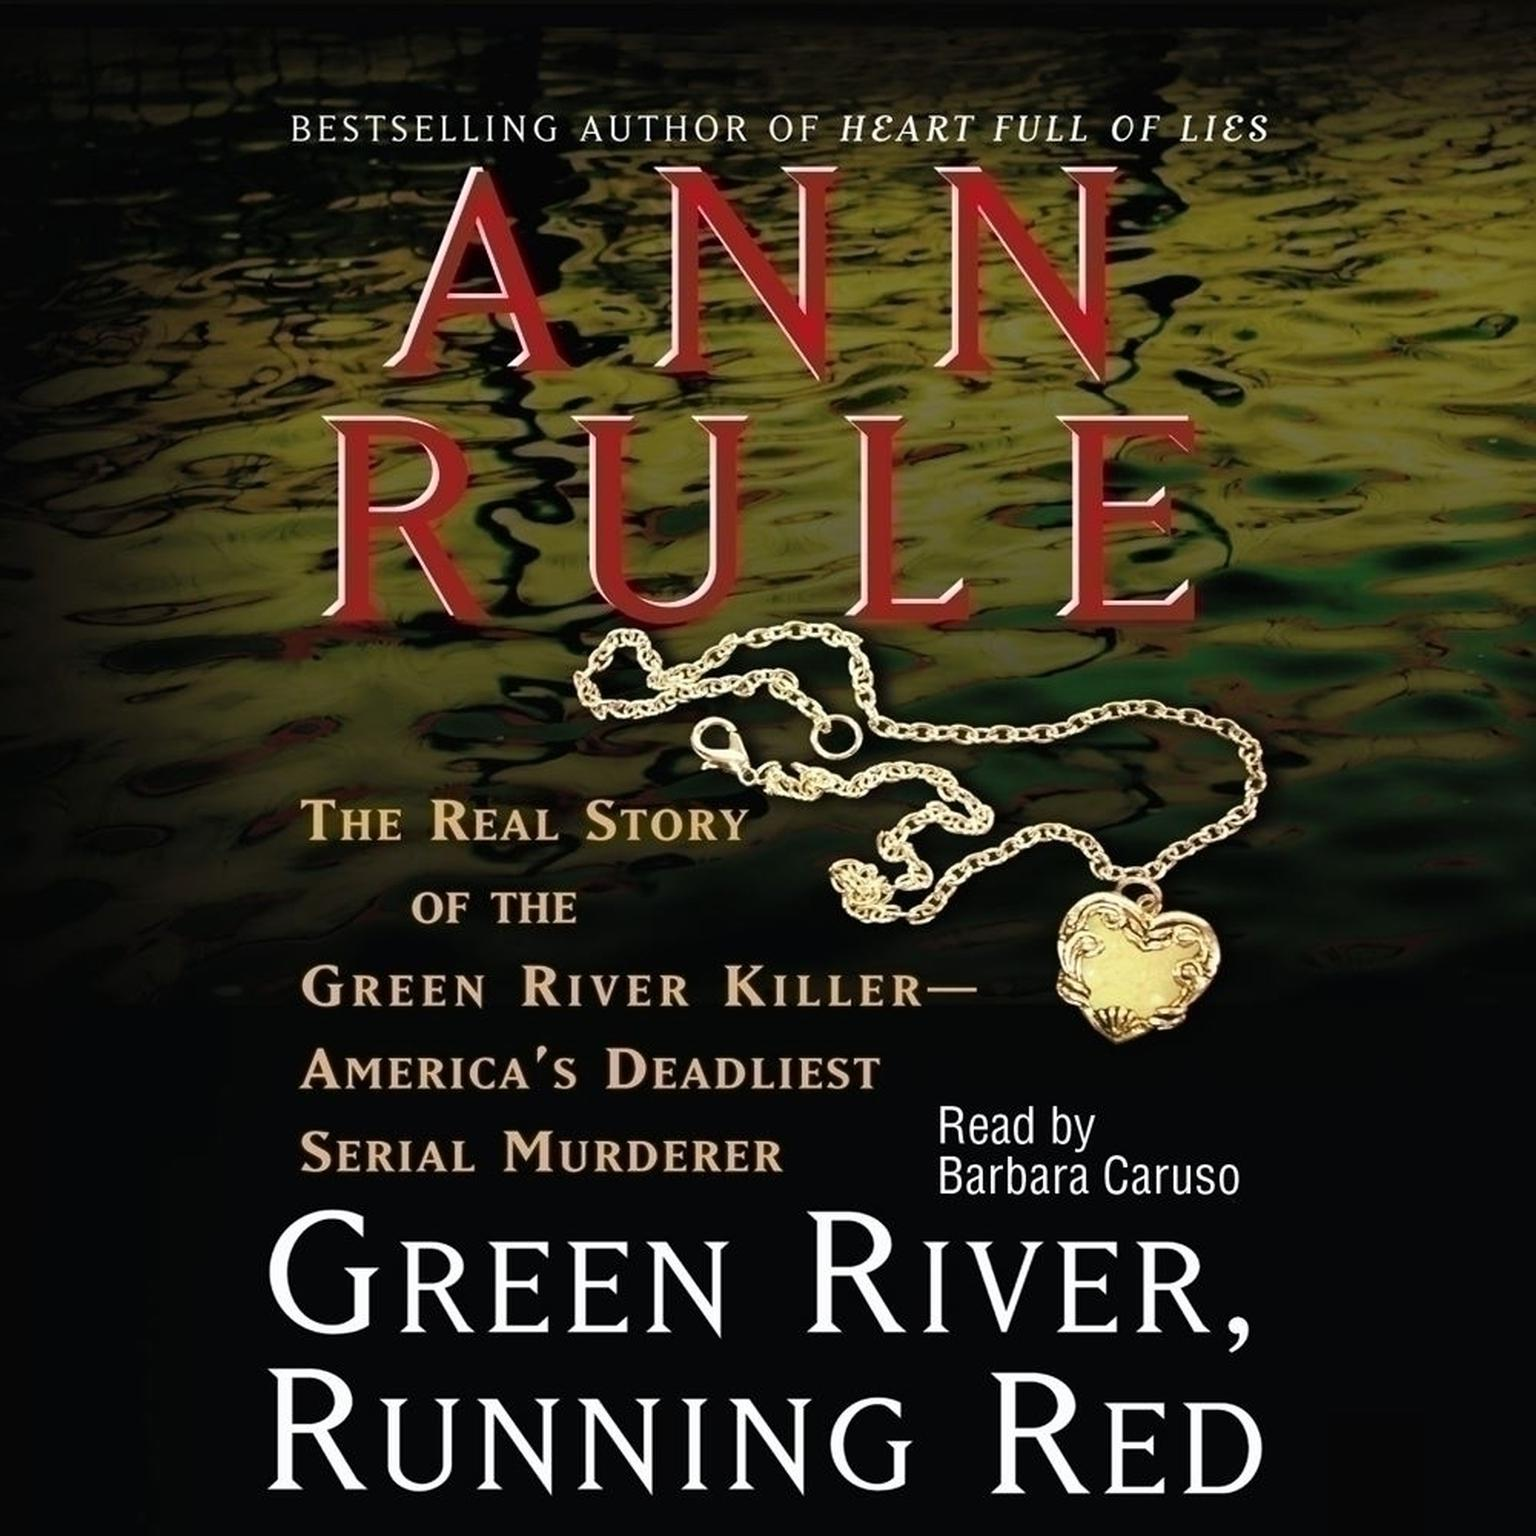 Printable Green River, Running Red: The Real Story of the Green River Killer, America's Deadliest Serial Murderer Audiobook Cover Art